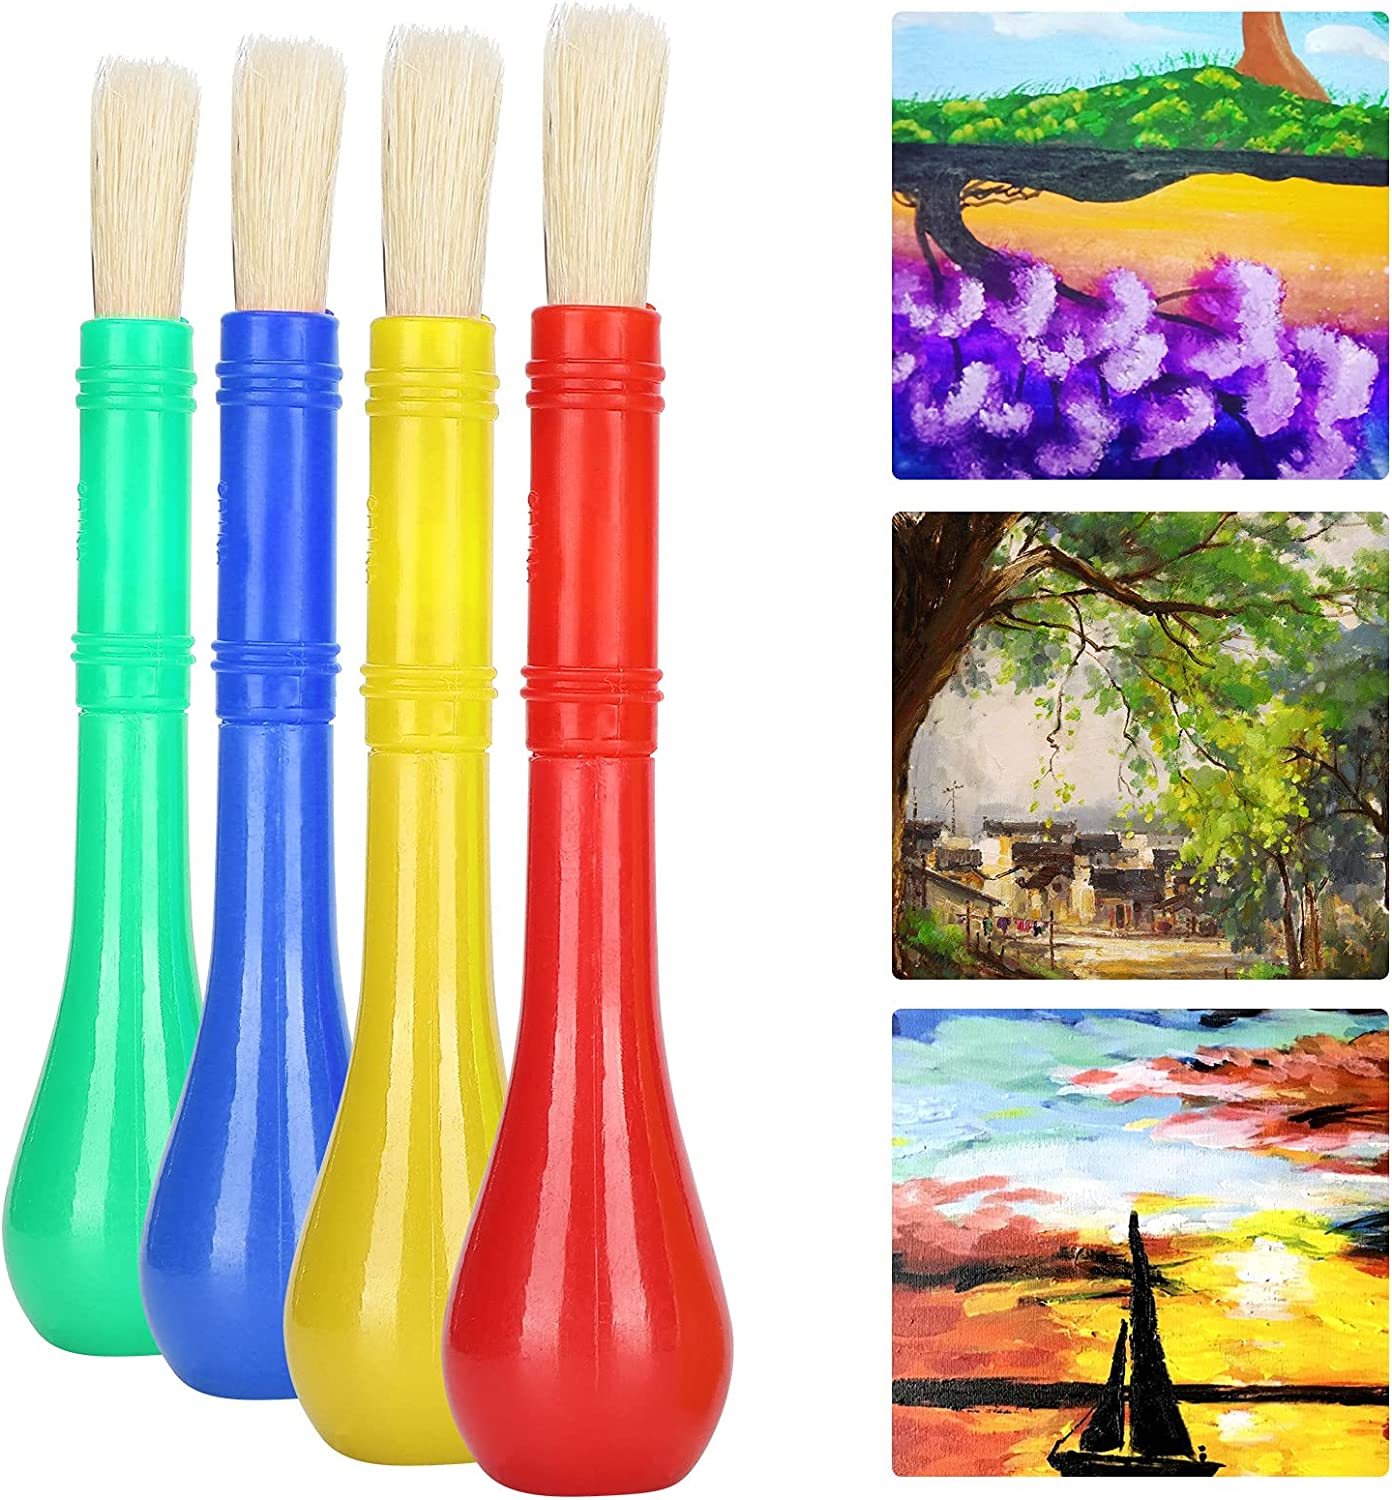 SALUTUY Kids Paint Brushes Practical to 4pcsQ Free shipping / New Easy Clea Durable Nippon regular agency